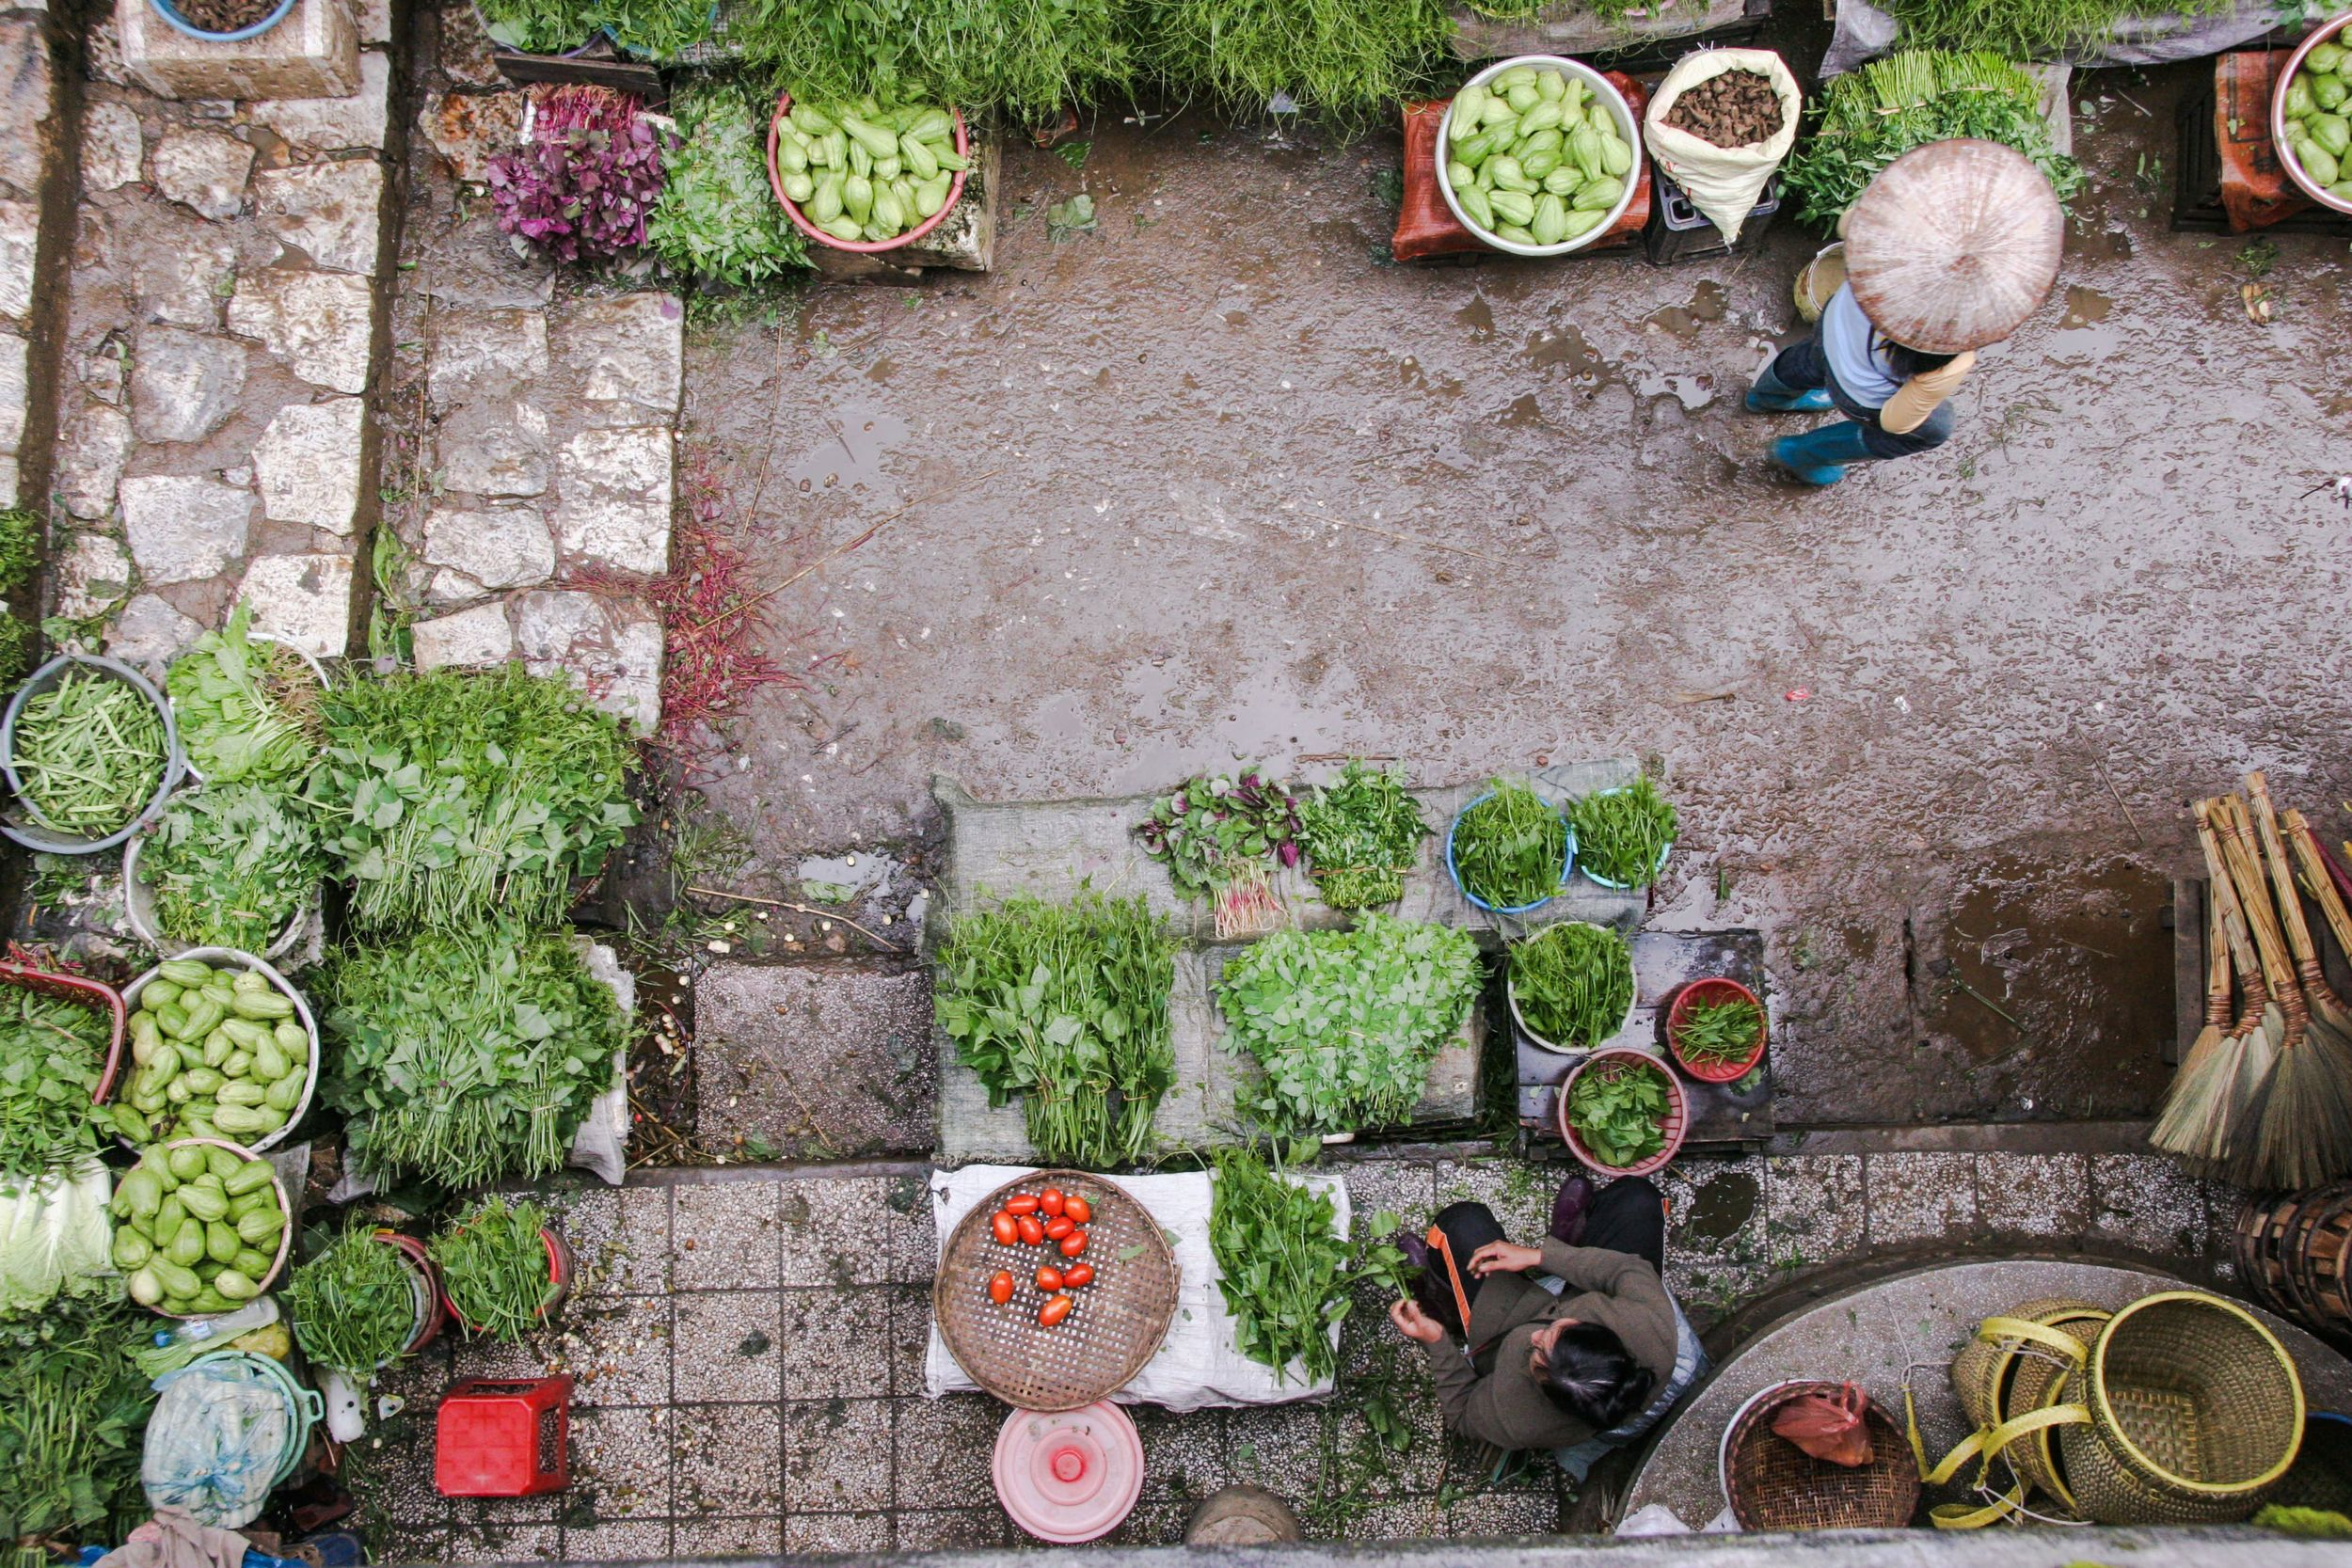 """""""A refined, confined area they can reign over"""", Vegetable market photo by  Siamak Djamei"""